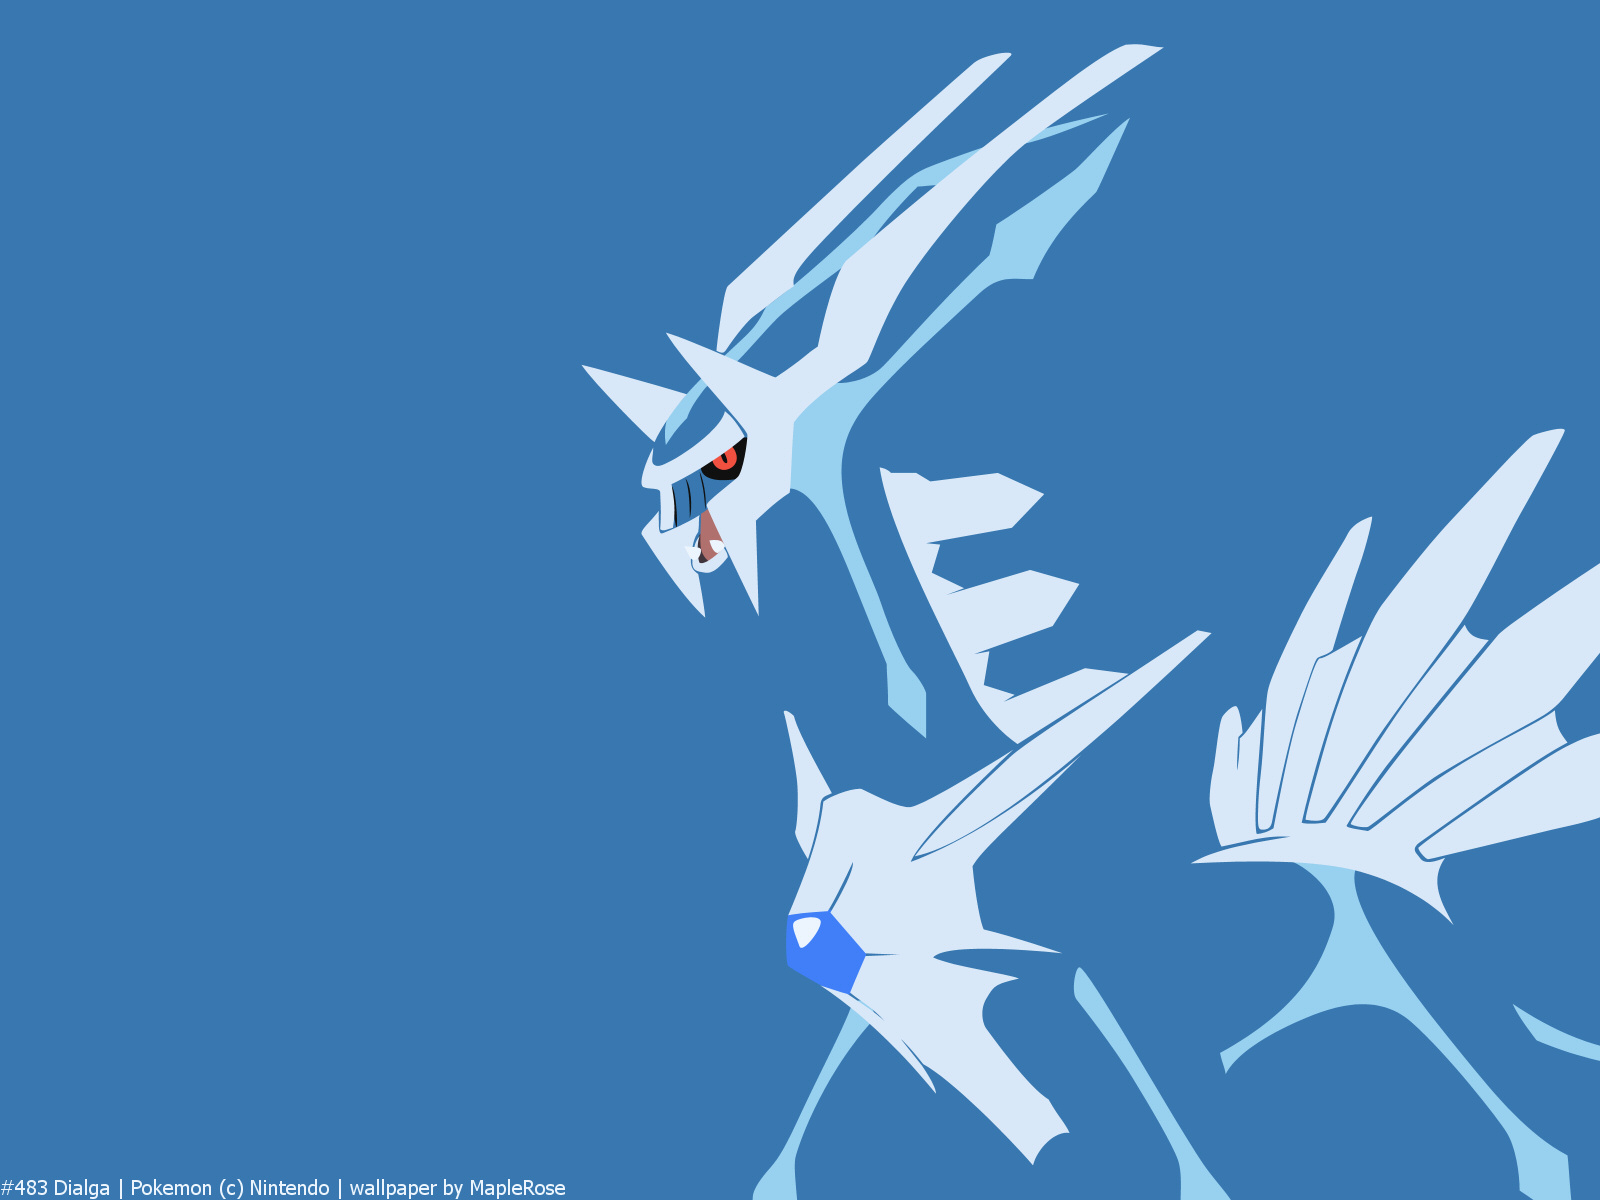 Download 150 Wallpapers minimalistas Pokmon HD Buensimos Taringa 1600x1200